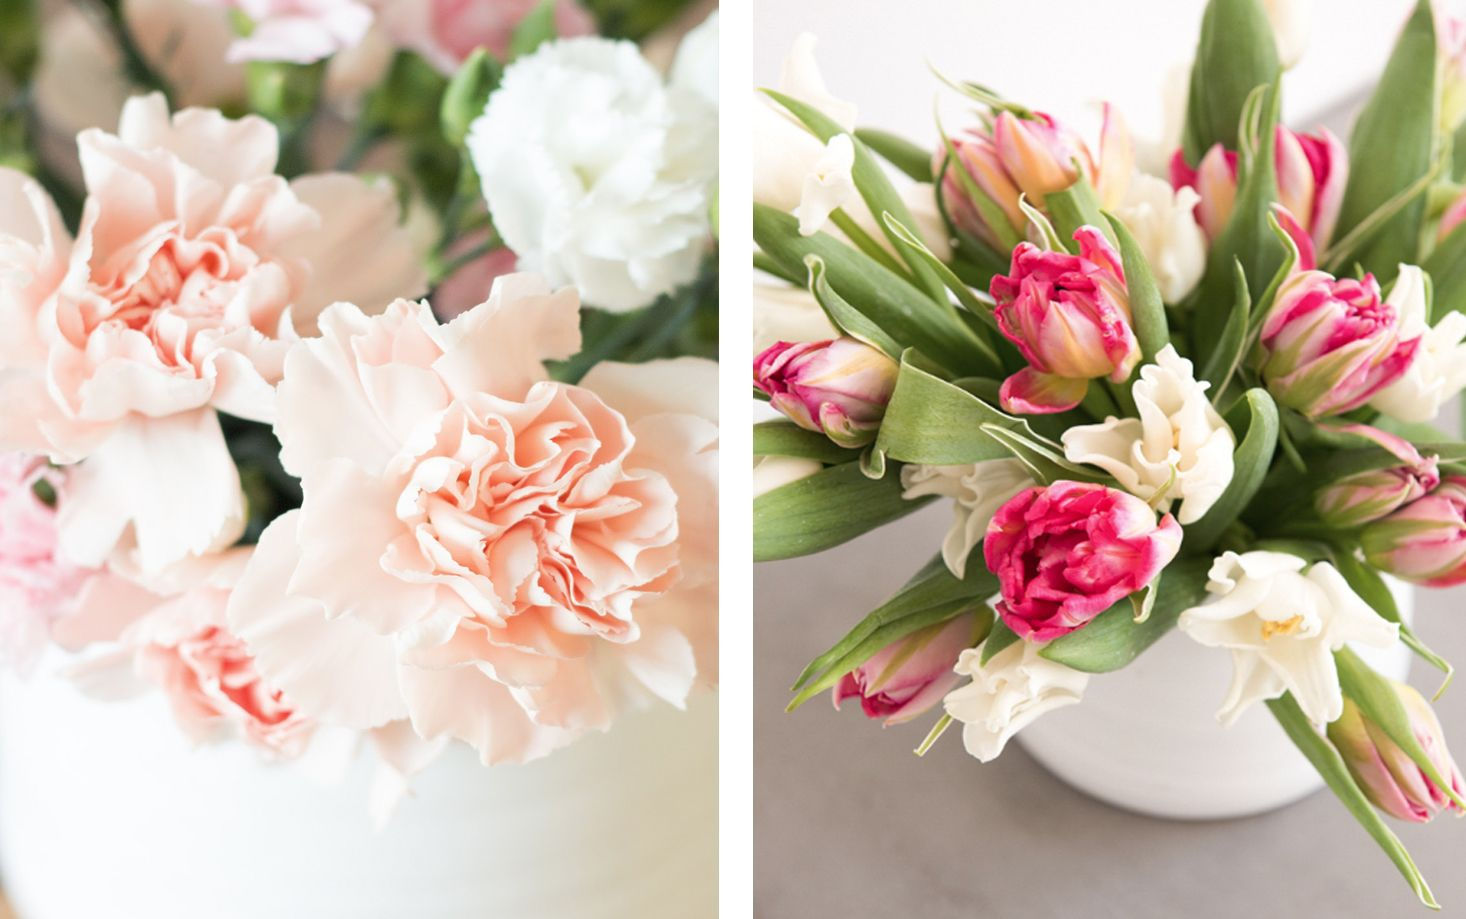 Elle Decor & 7 Gorgeous Long Lasting Flowers - The Best Long Lasting Cut Flowers